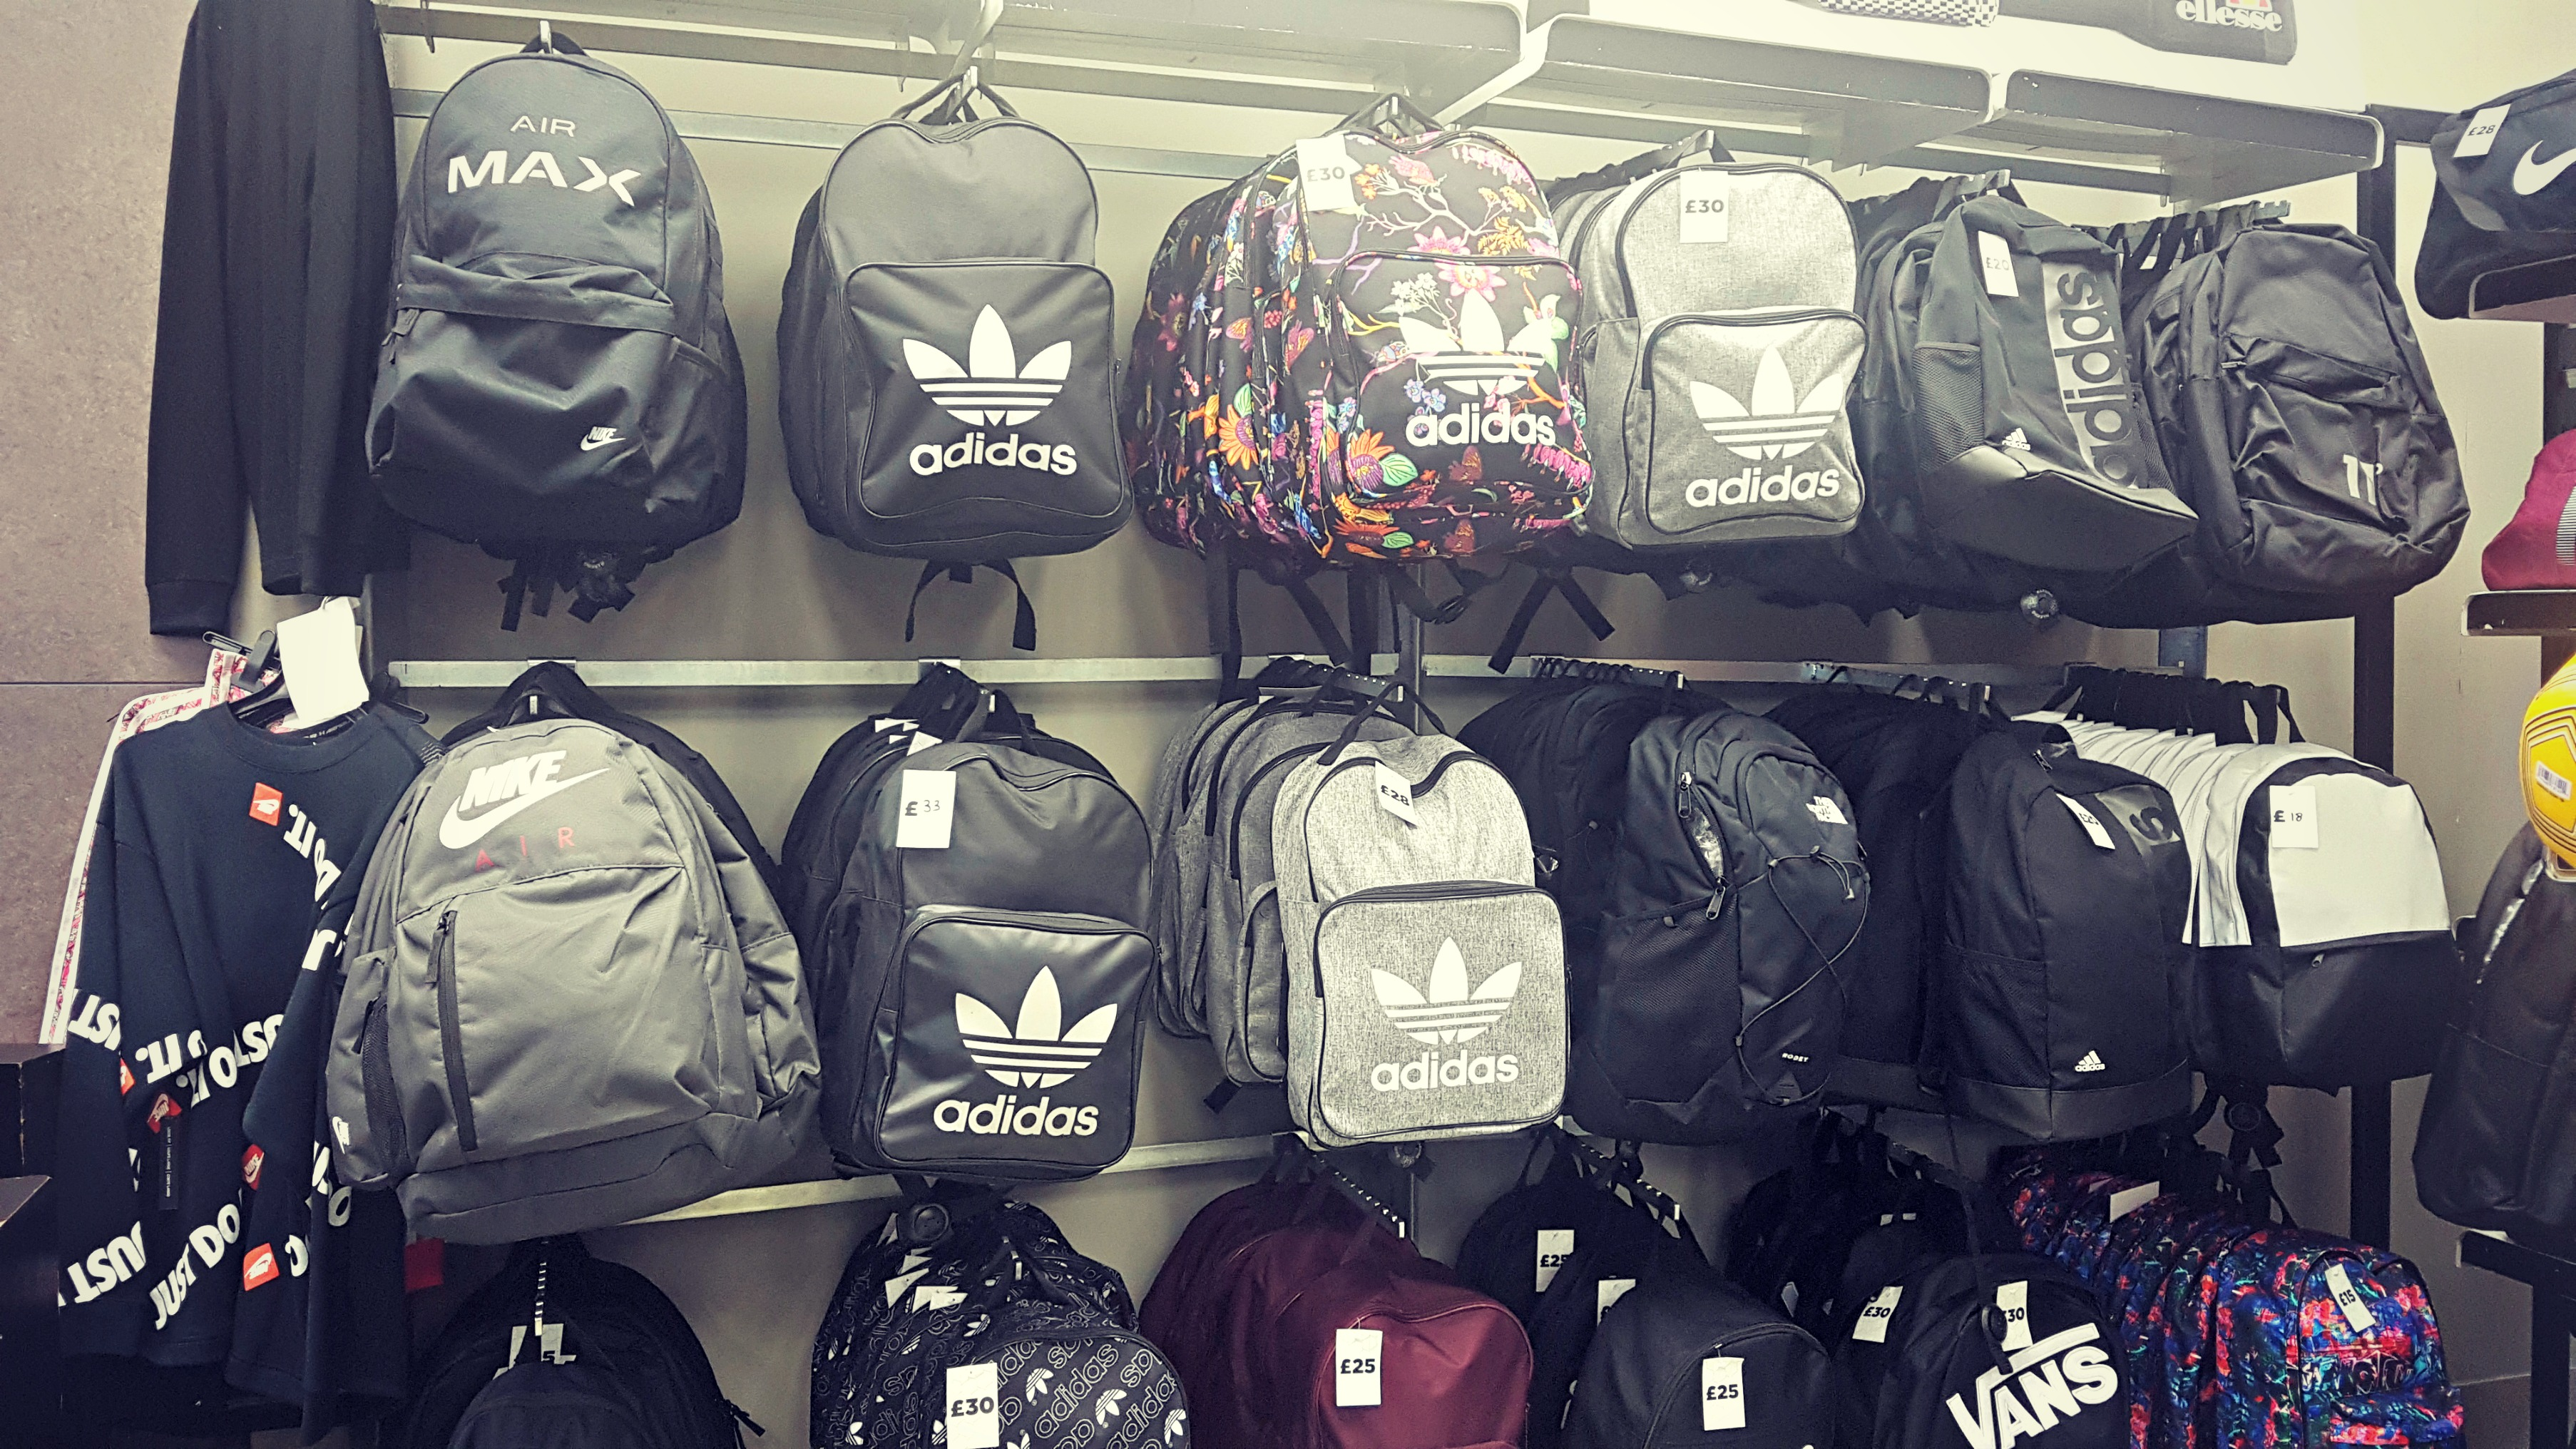 a wall display of backpacks at jd sports coliseum shopping park